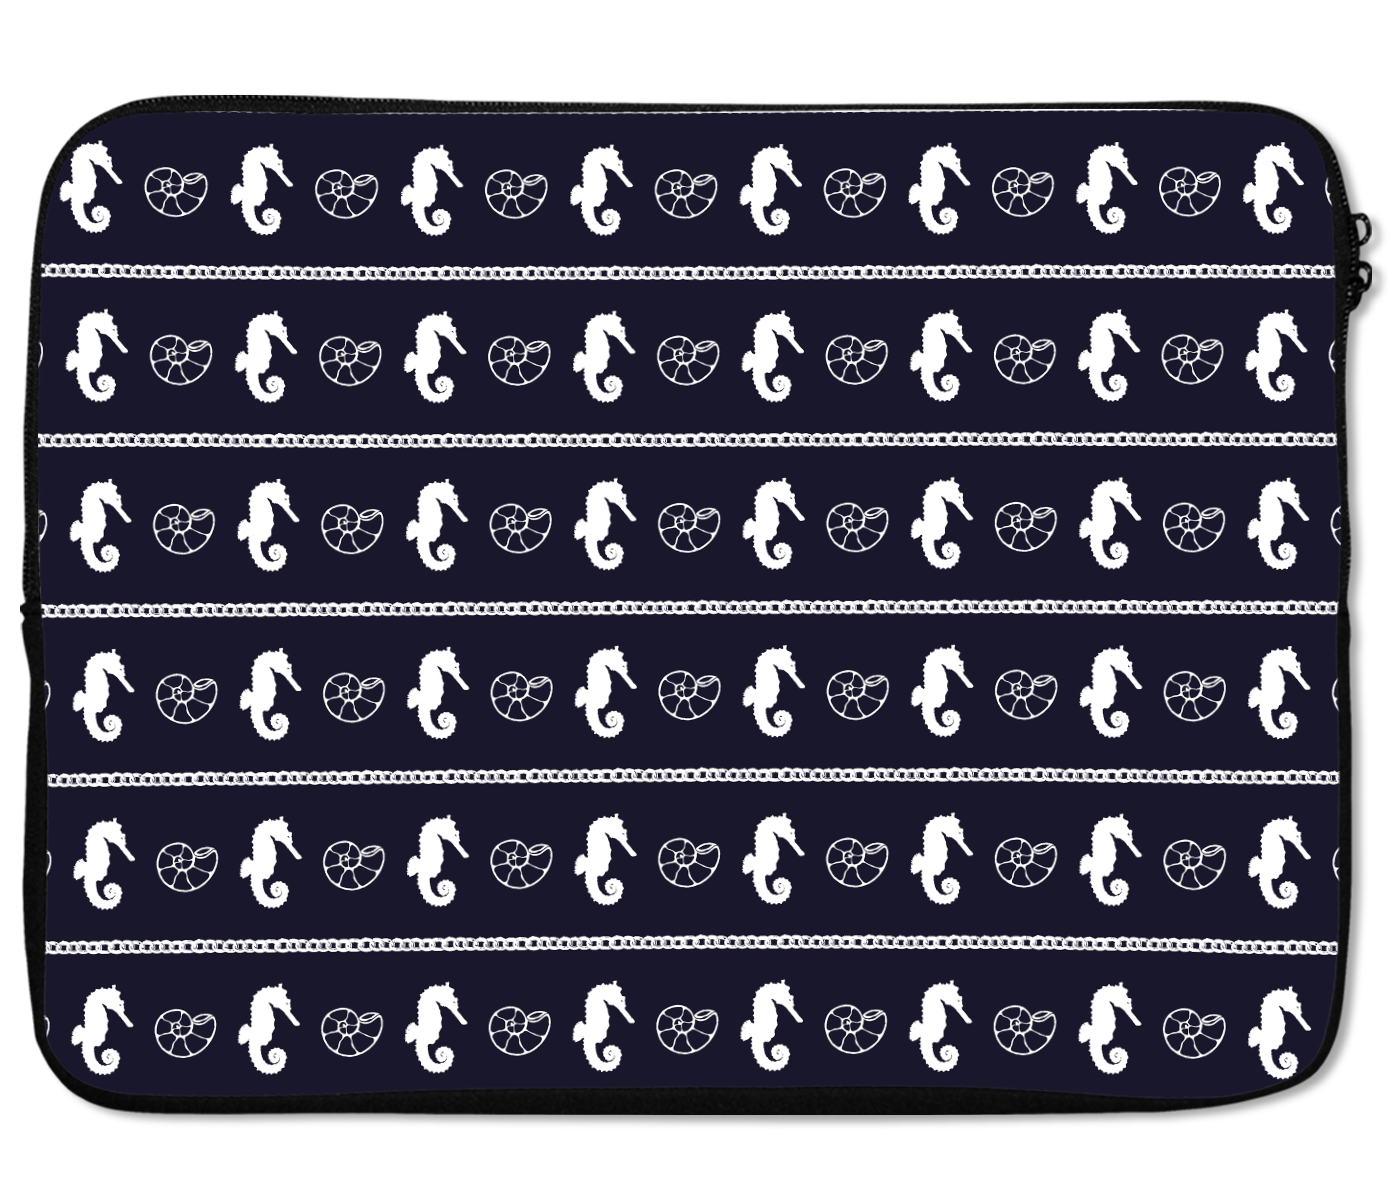 Laptops Tablet Sleeves Sea Horse Pattern Shell Premium Quality Neoprene Laptop Protection